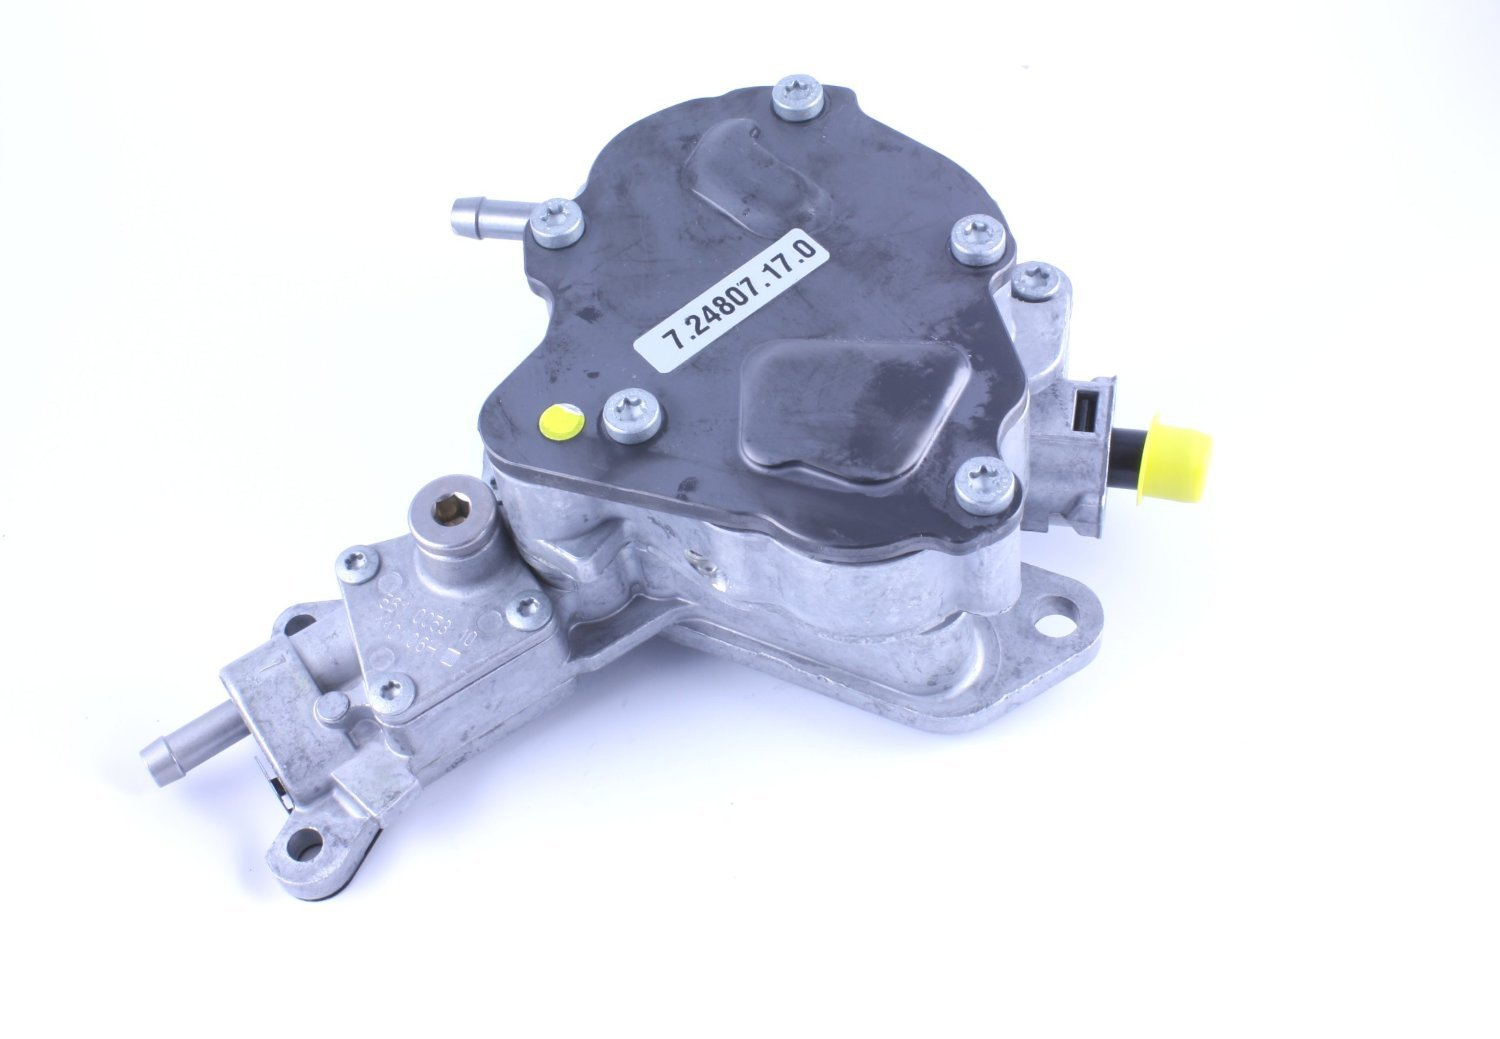 Genuine Volkswagen Vacuum Pump for TDI 038-145-209-Q